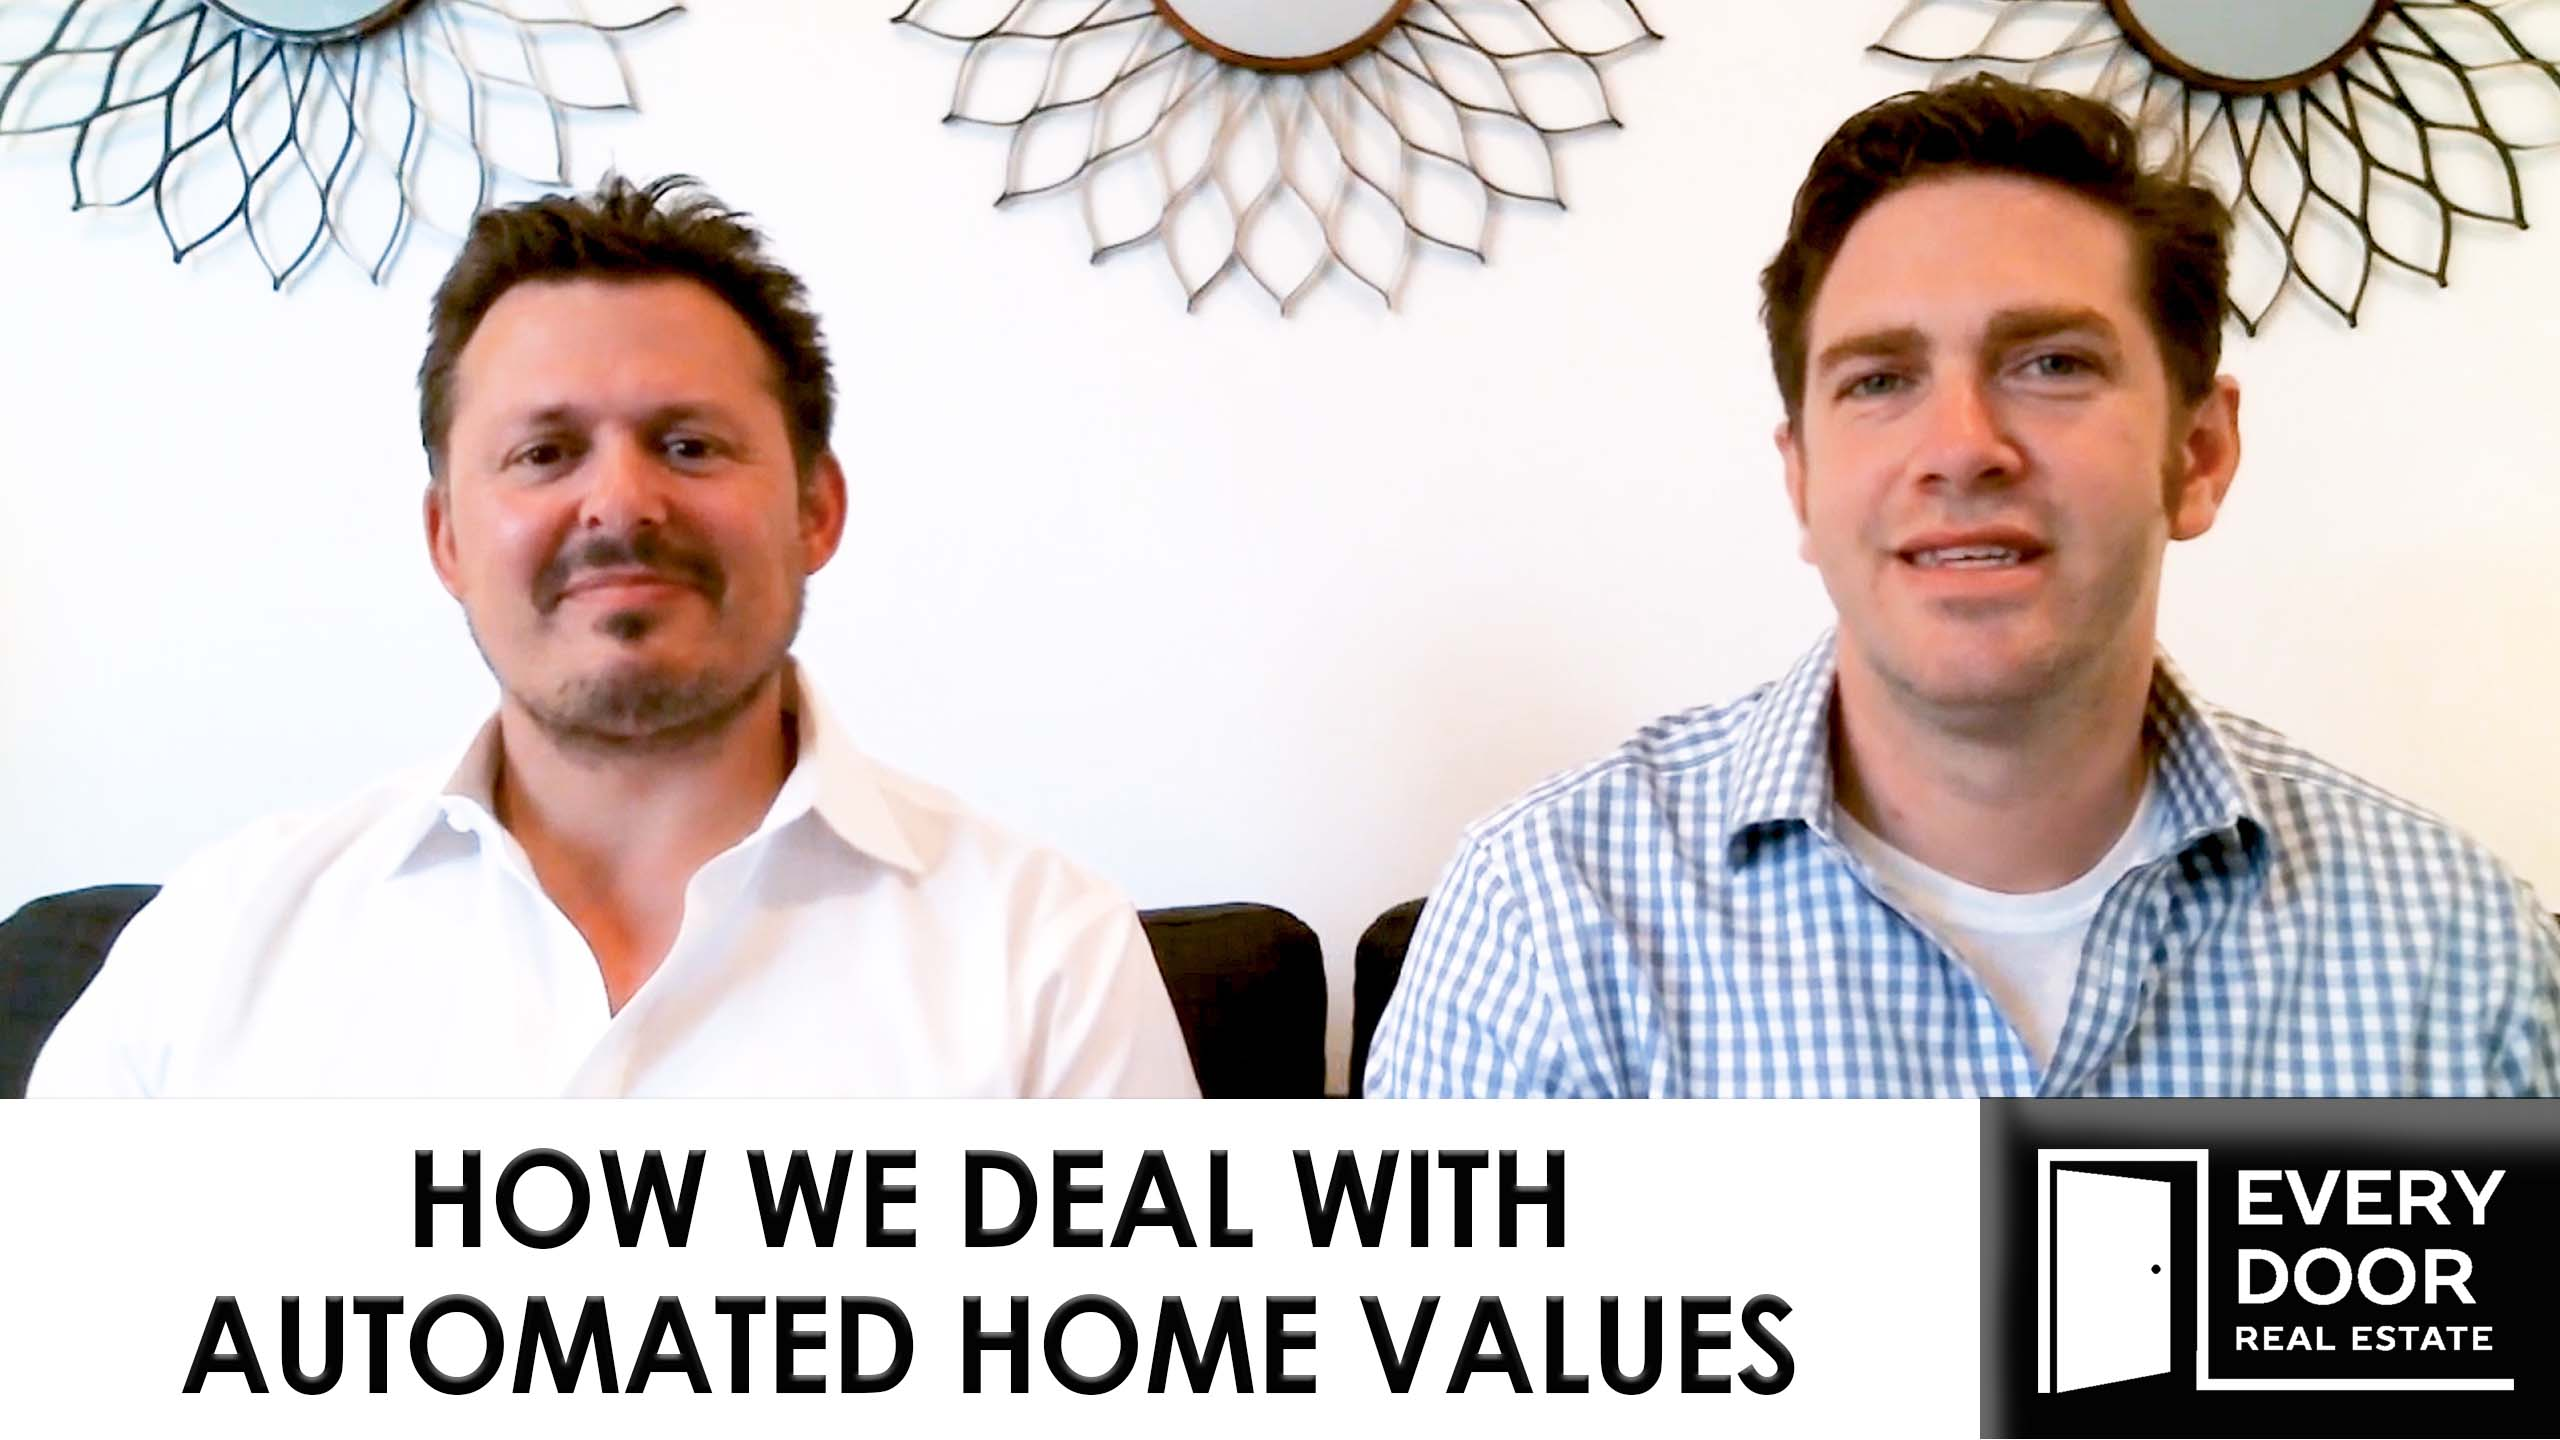 Why You Should Take Automated Home Values With a Grain of Salt